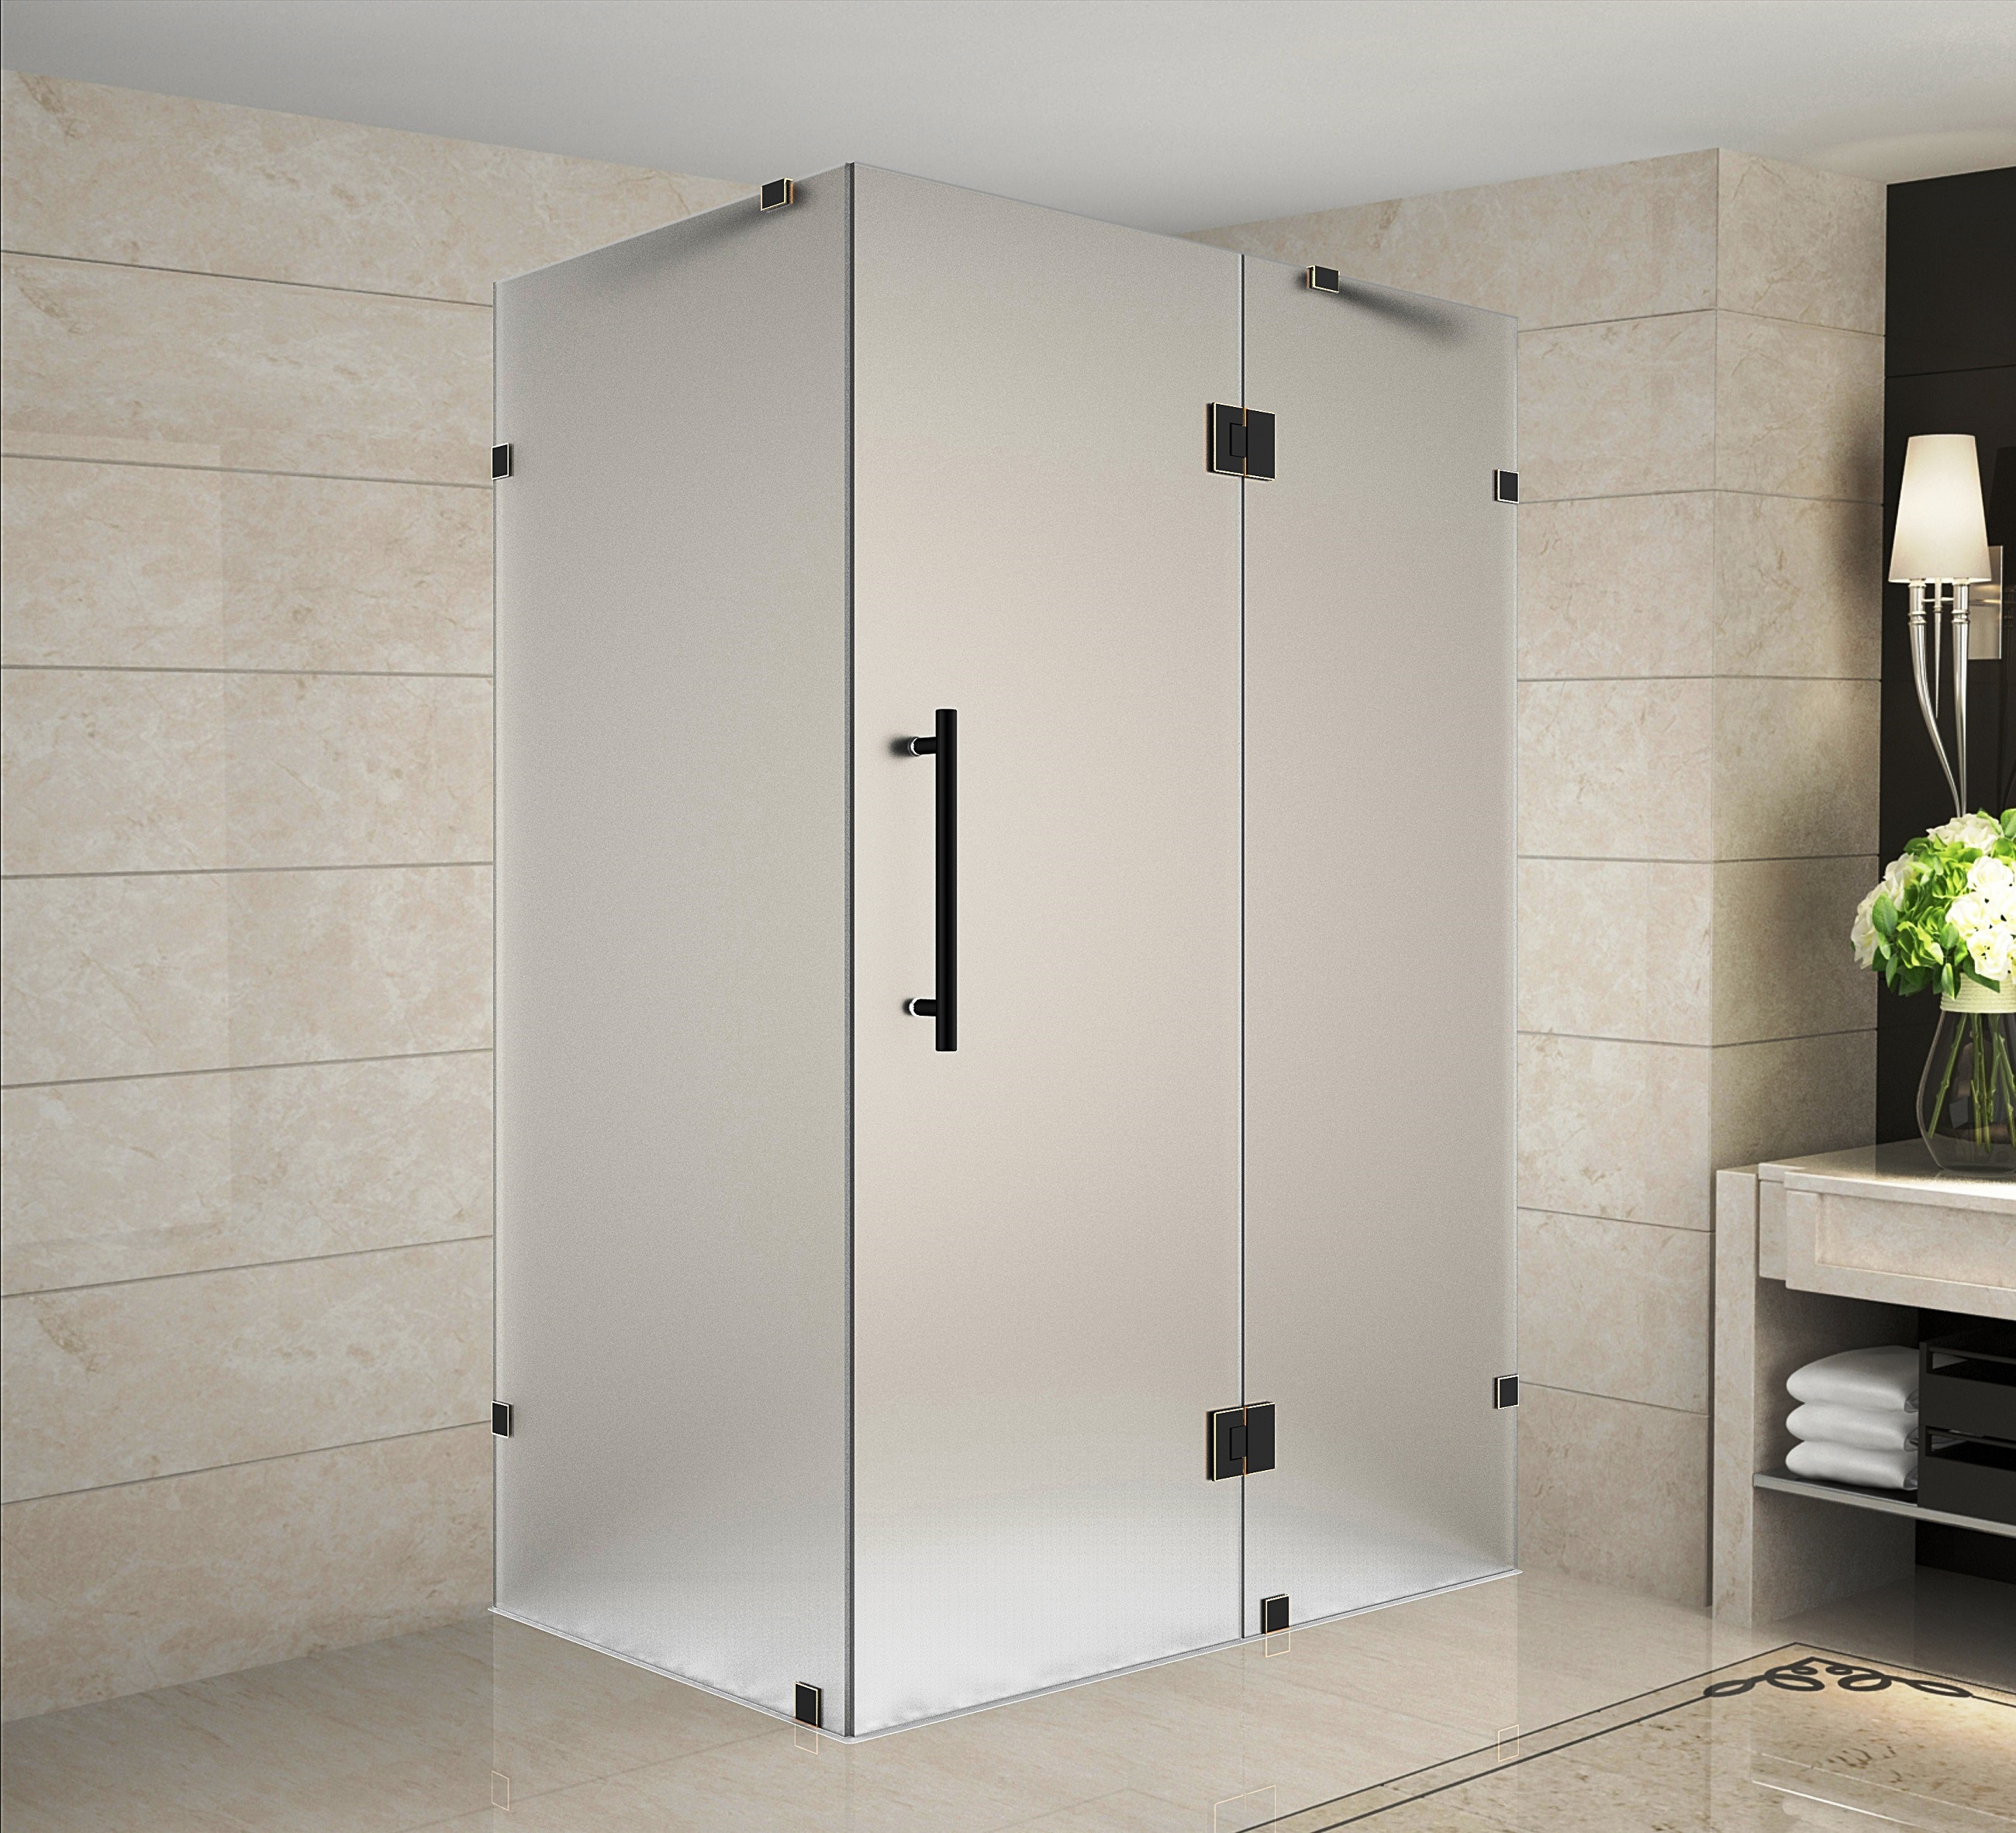 Aston Global SEN987F-ORB-3730-10 Oil Rubbed Bronze Completely Frameless Frosted Glass Shower Enclosure In